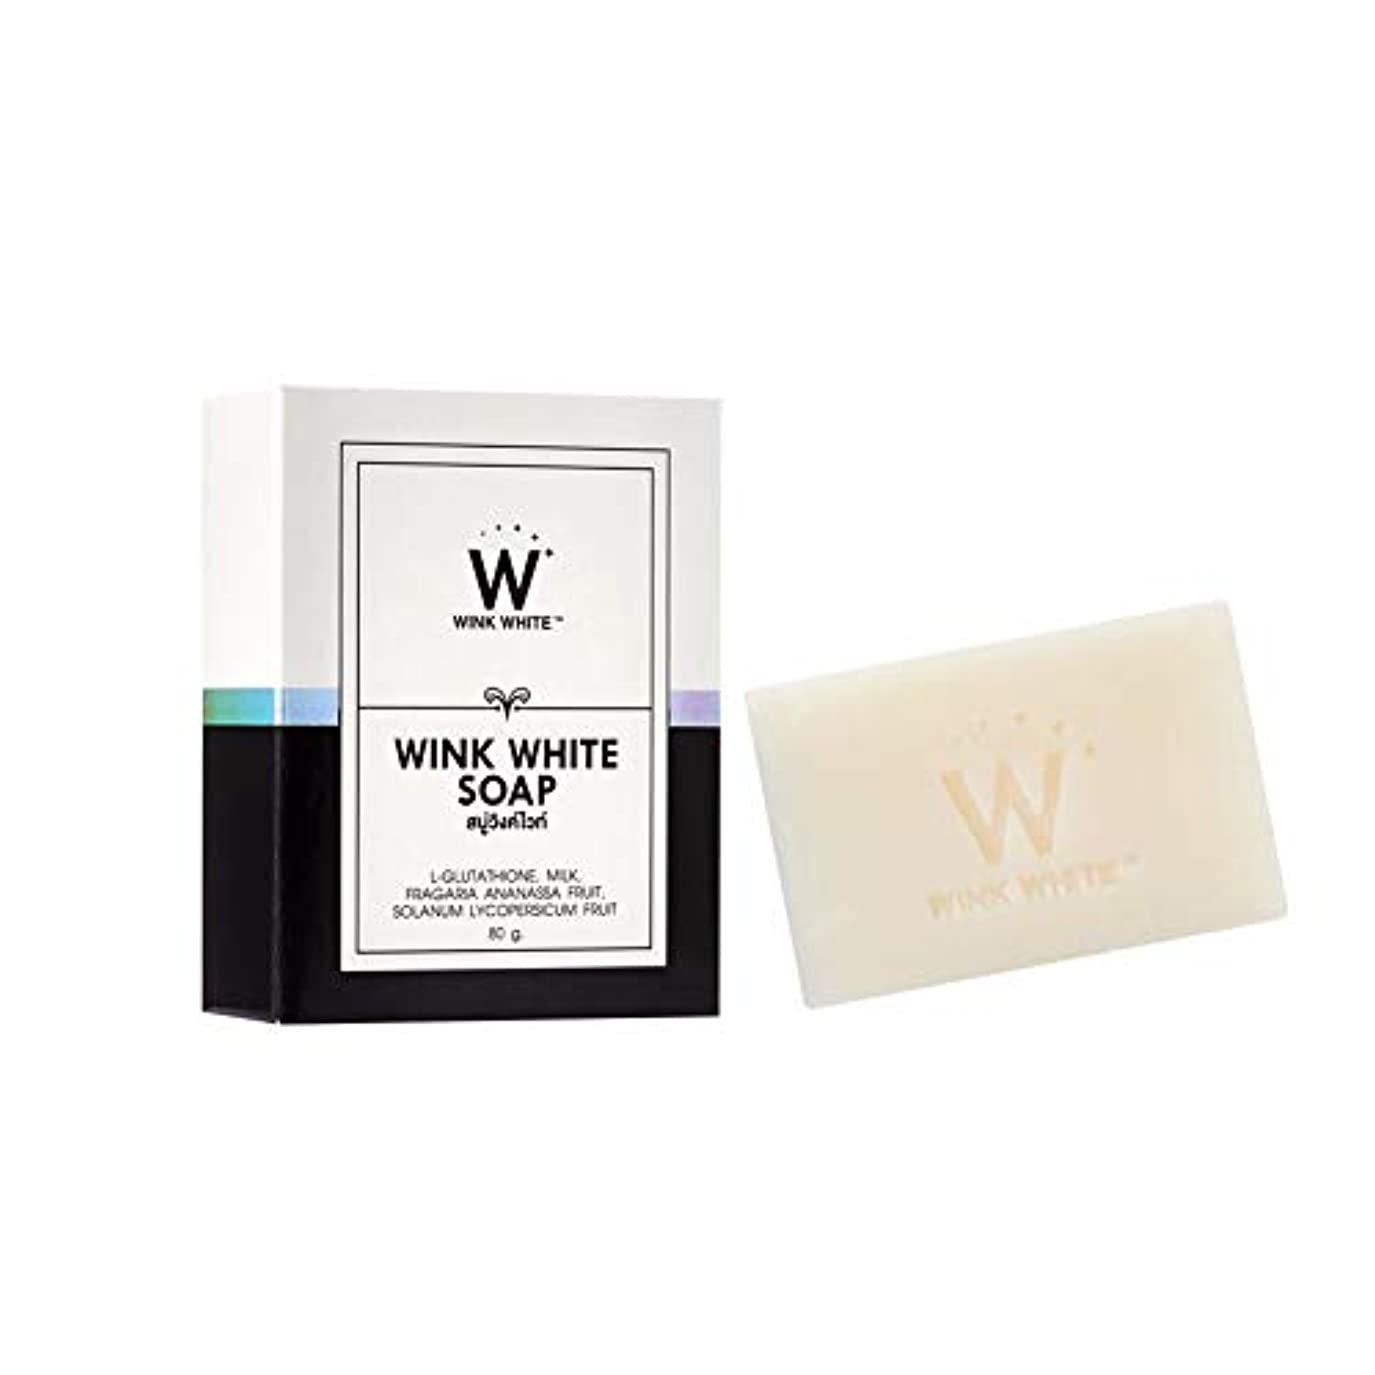 故意に退屈不確実Soap Net Nature White Soap Base Wink White Soap Gluta Pure Skin Body Whitening Strawberry for Whitening Skin All...